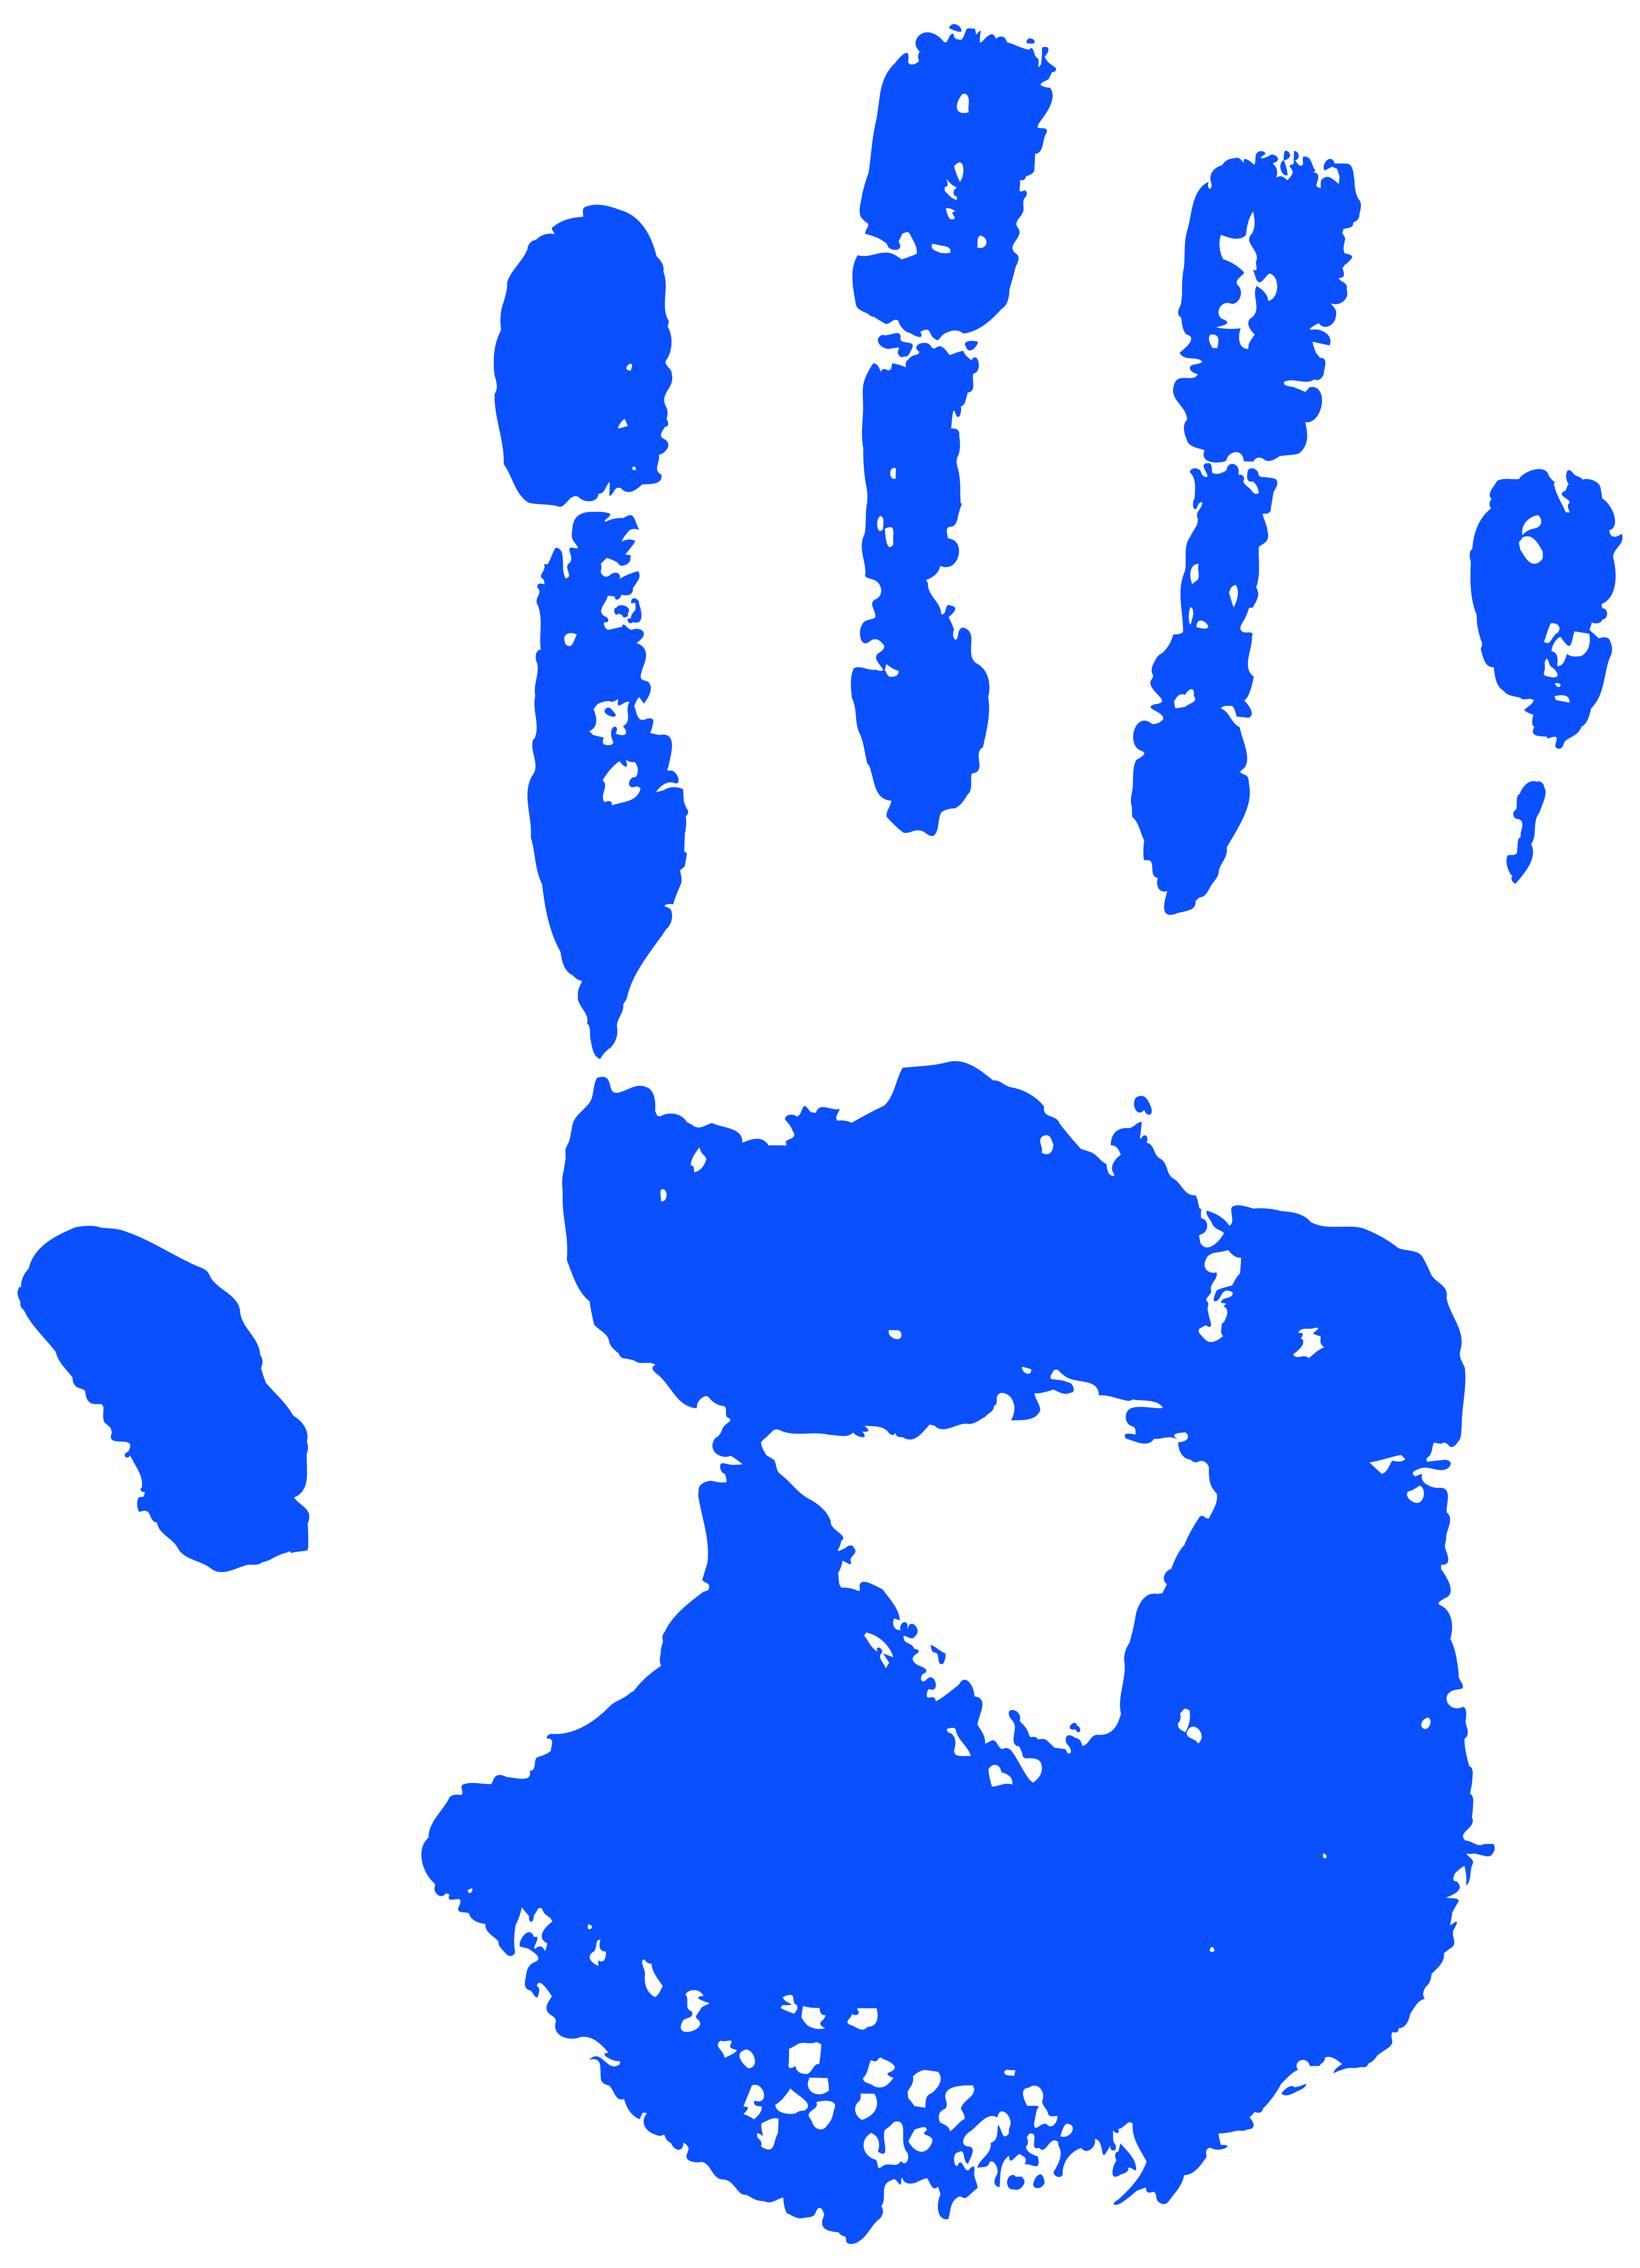 Blue clipart handprint Image Yopriceville size Gallery View